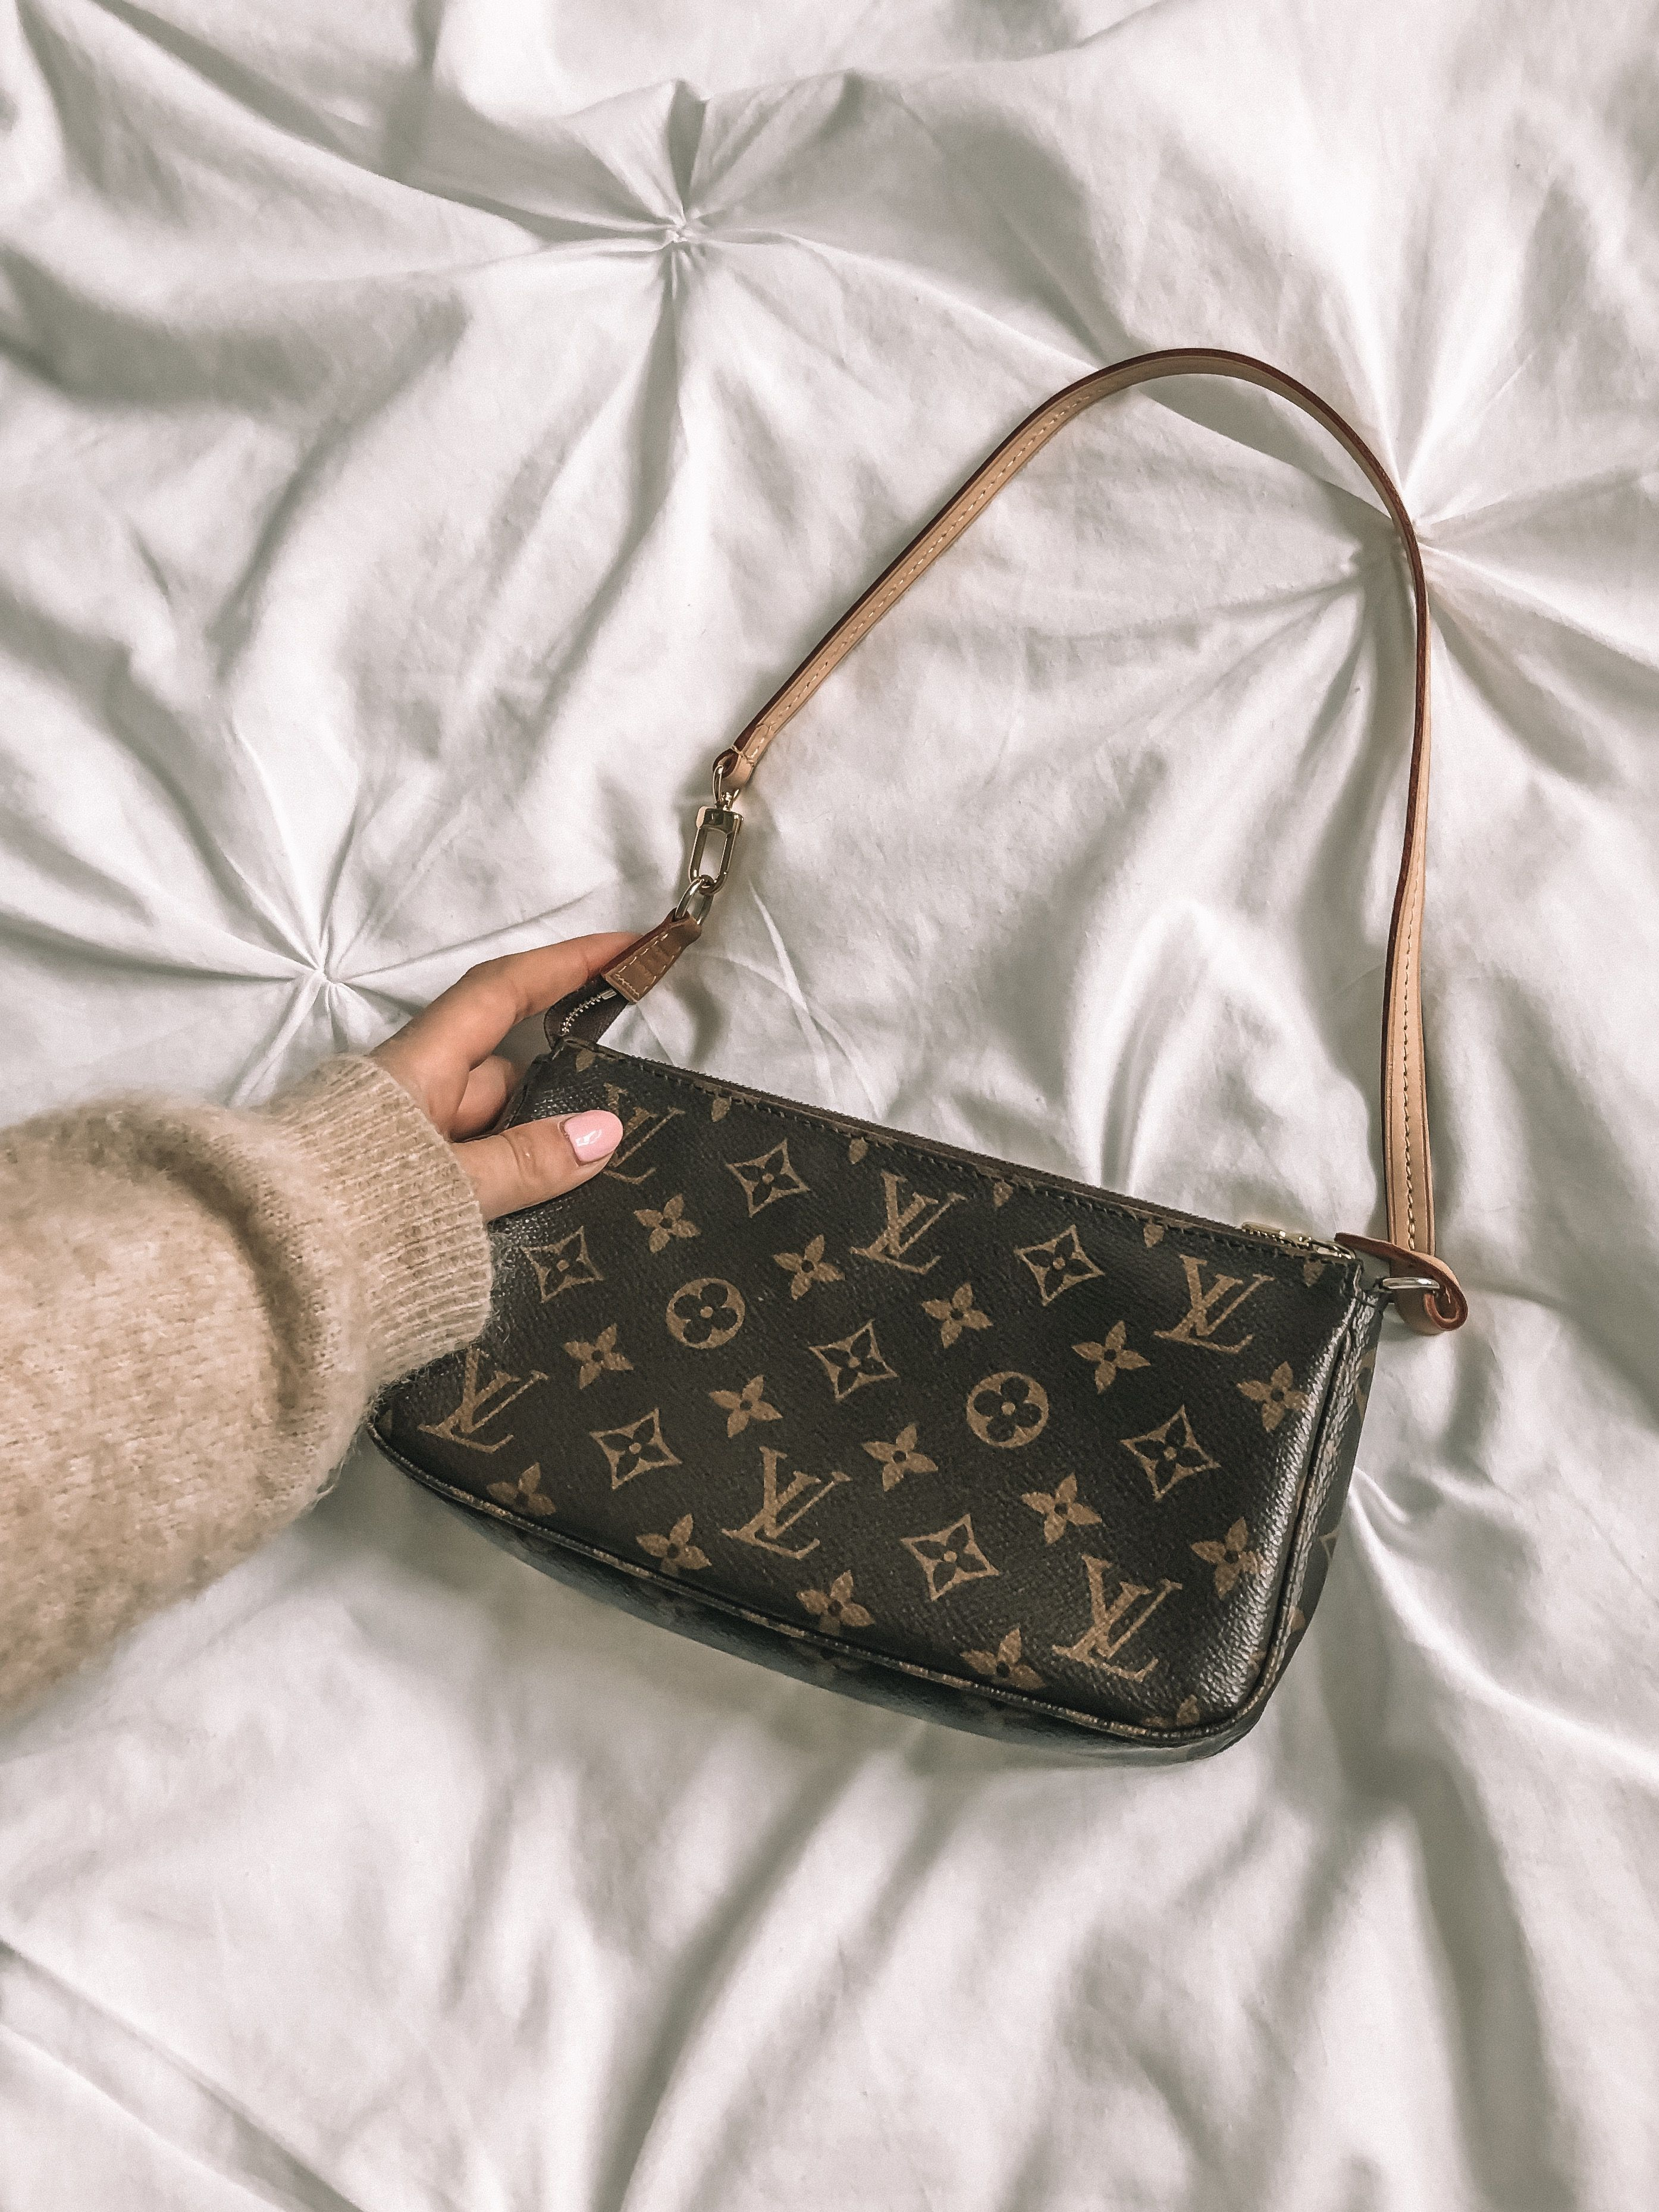 9 Of The Best : 90s Handbag | Love Style Mindfulness - Fashion & Personal Style Blog